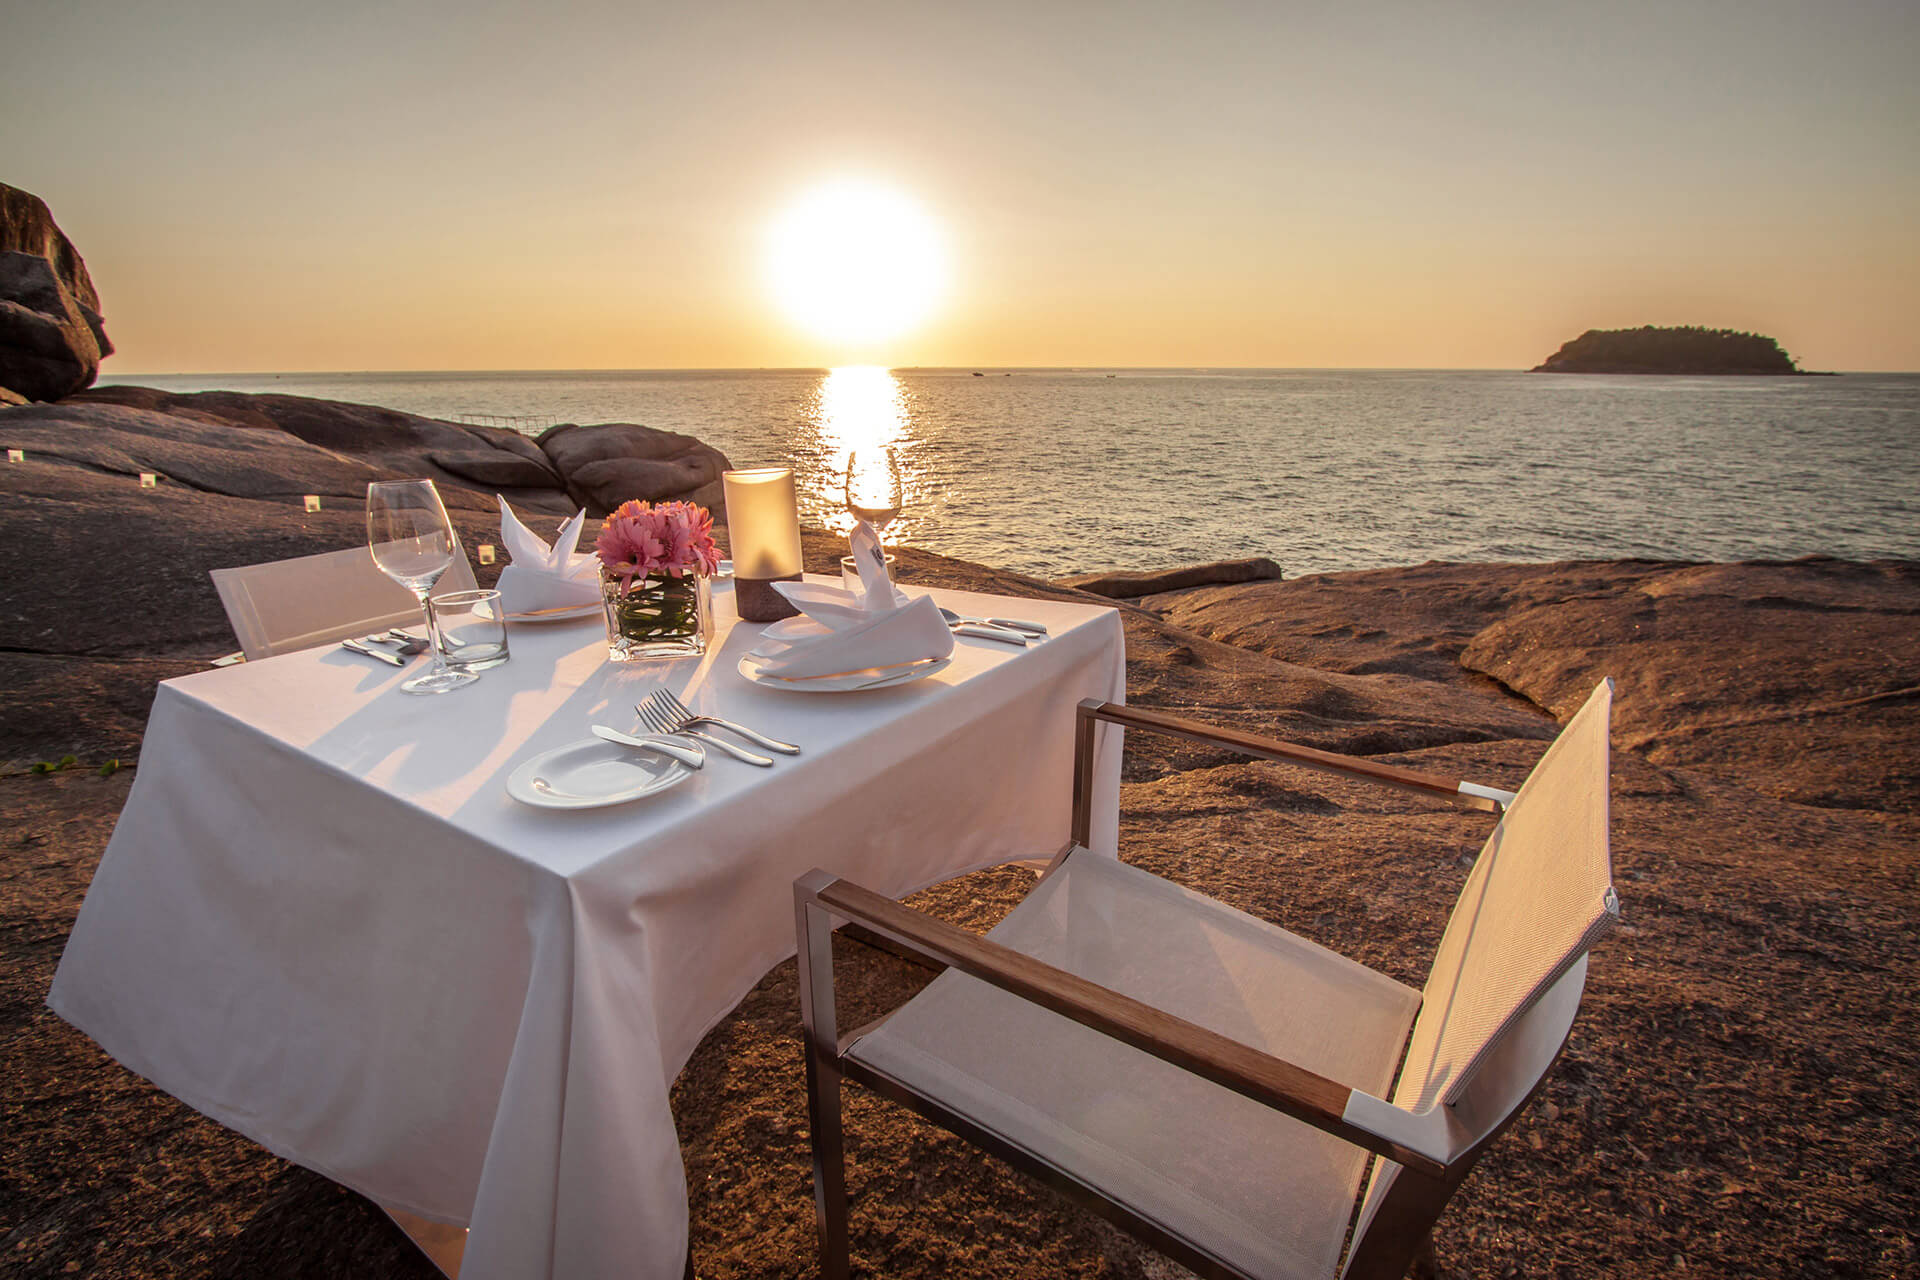 Destination Dining on the Rocks